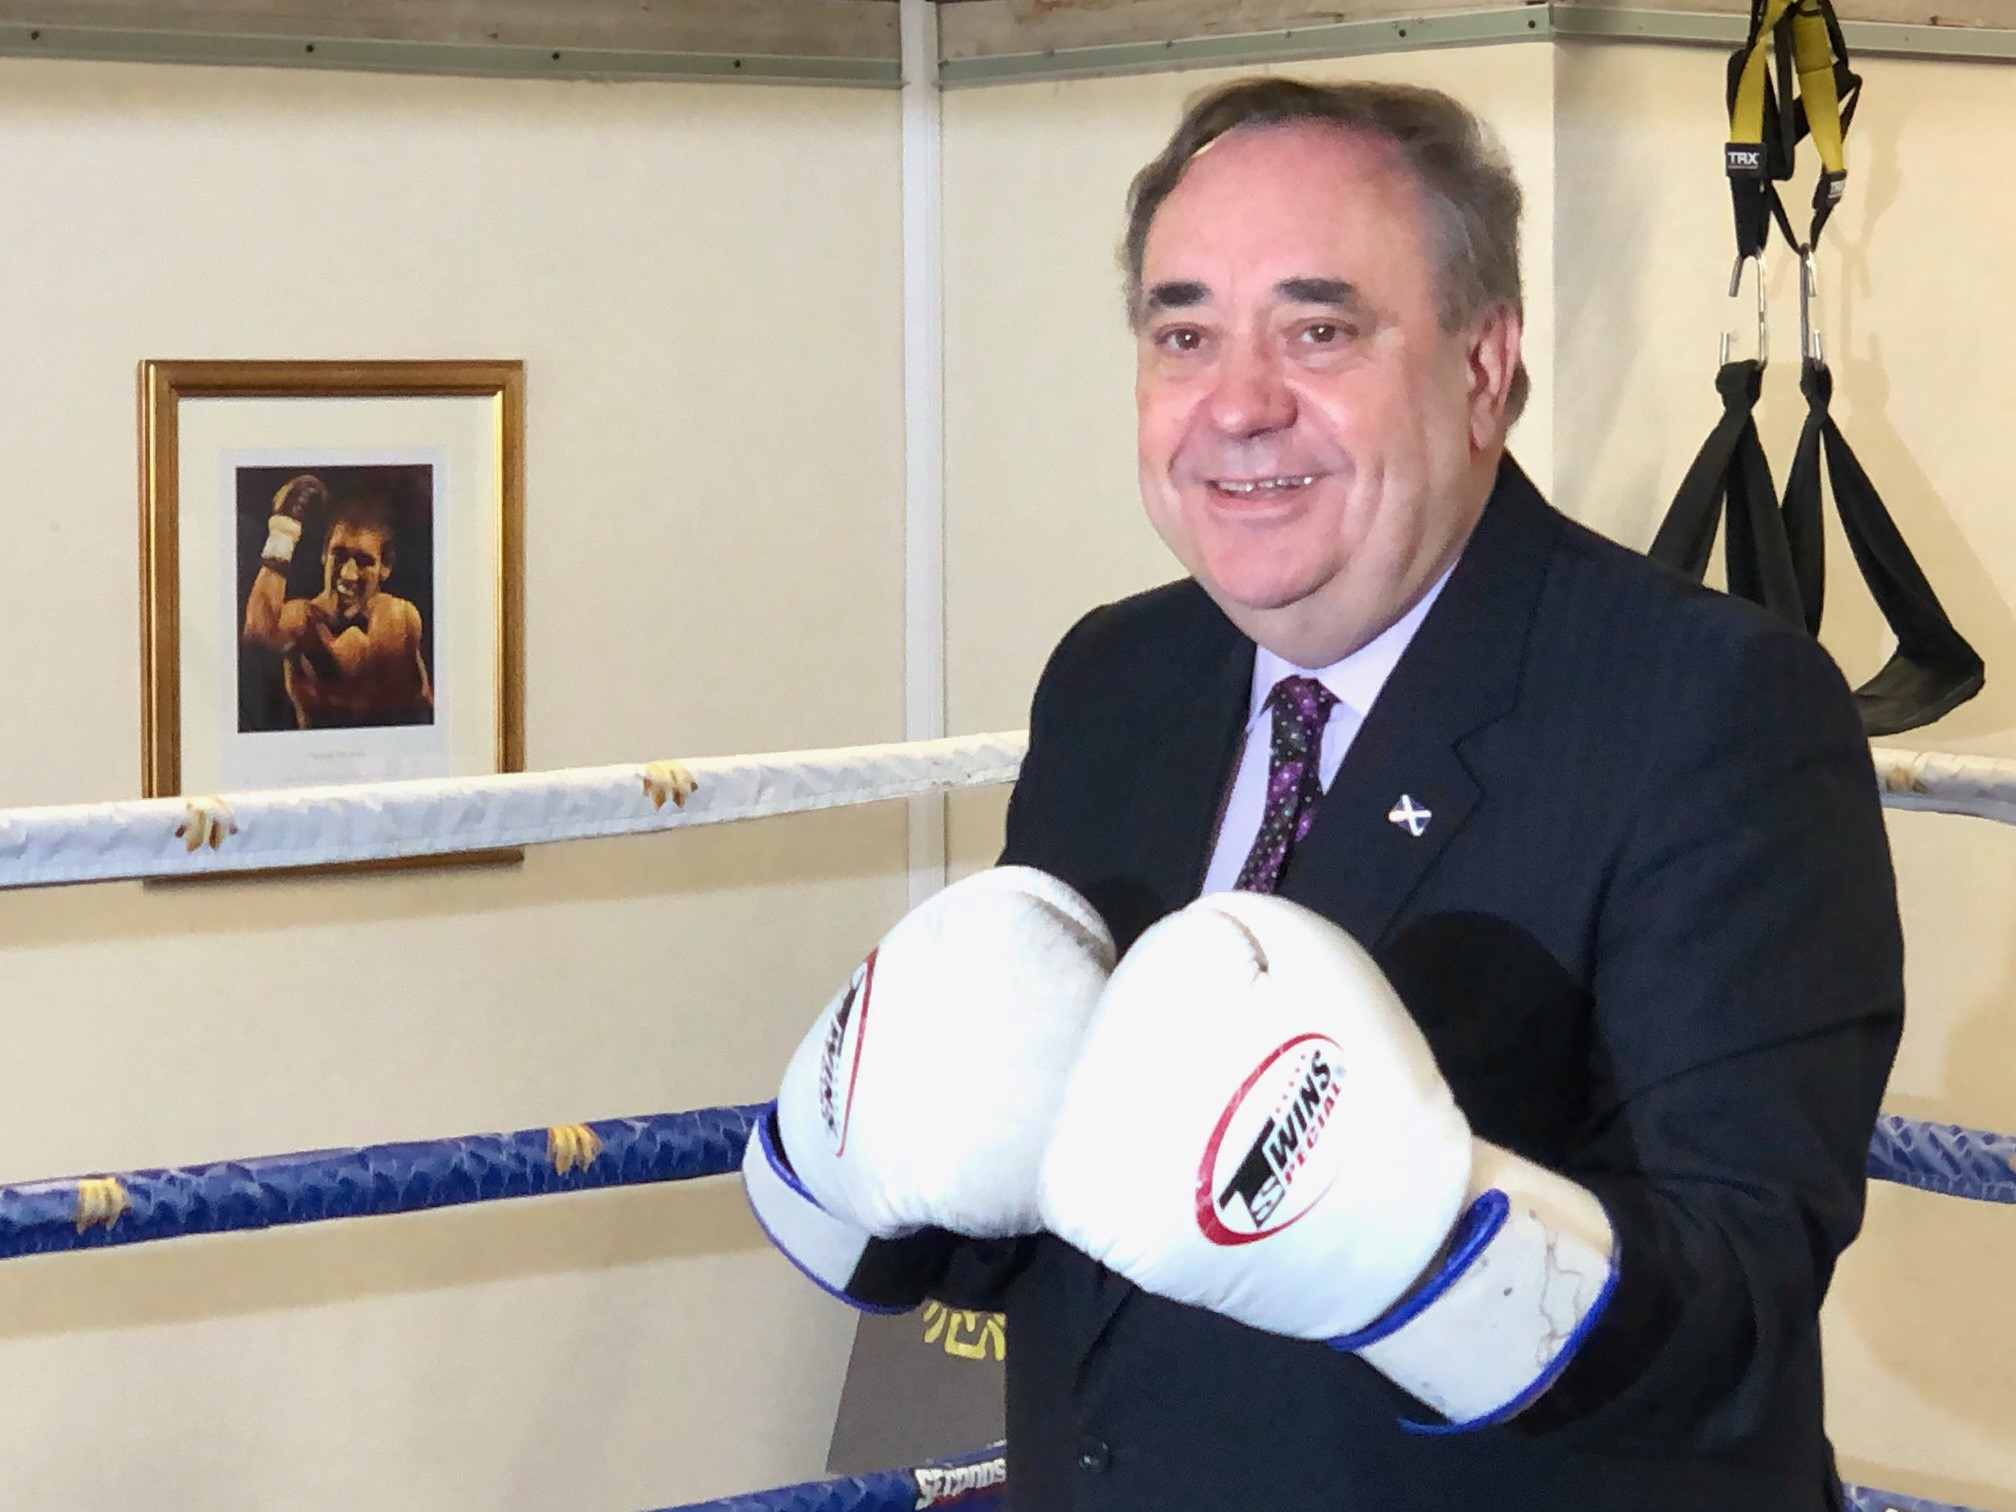 <p>ALBA Party leader Alex Salmond at Alex Arthur's Boxing Gym in Edinburgh during his campaigning for the Scottish Parliamentary election. Picture date: Monday April 26, 2021.</p>